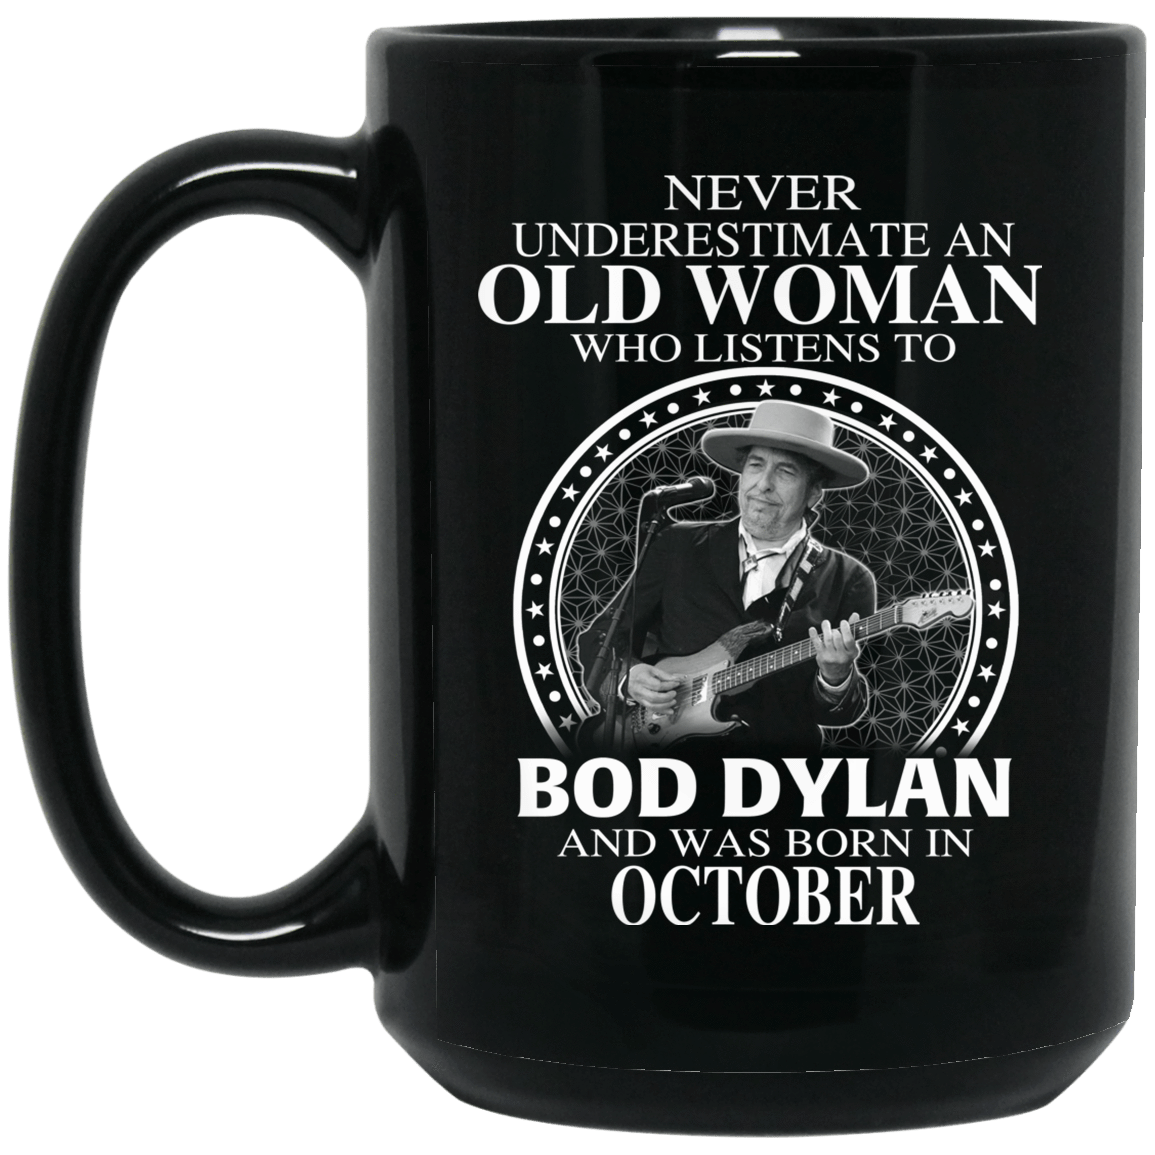 An Old Woman Who Listens To Bob Dylan And Was Born In October Mug 1066-10182-76154131-49311 - Tee Ript